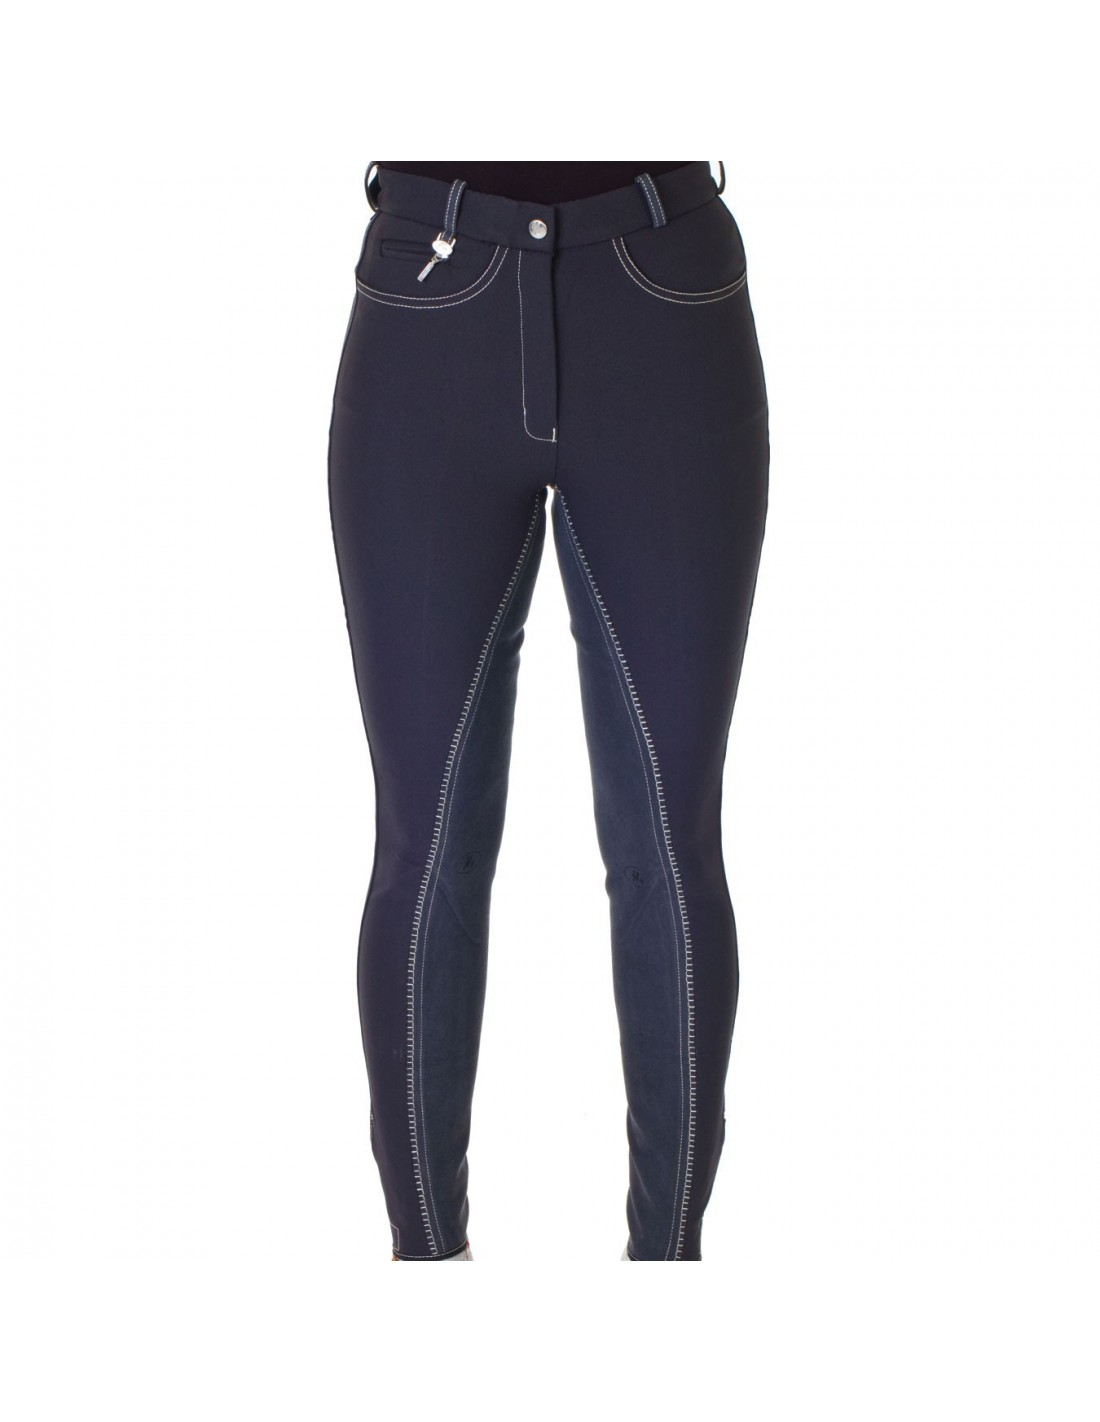 Equestrian Clothing Hyperformance Style Ladies Breeches